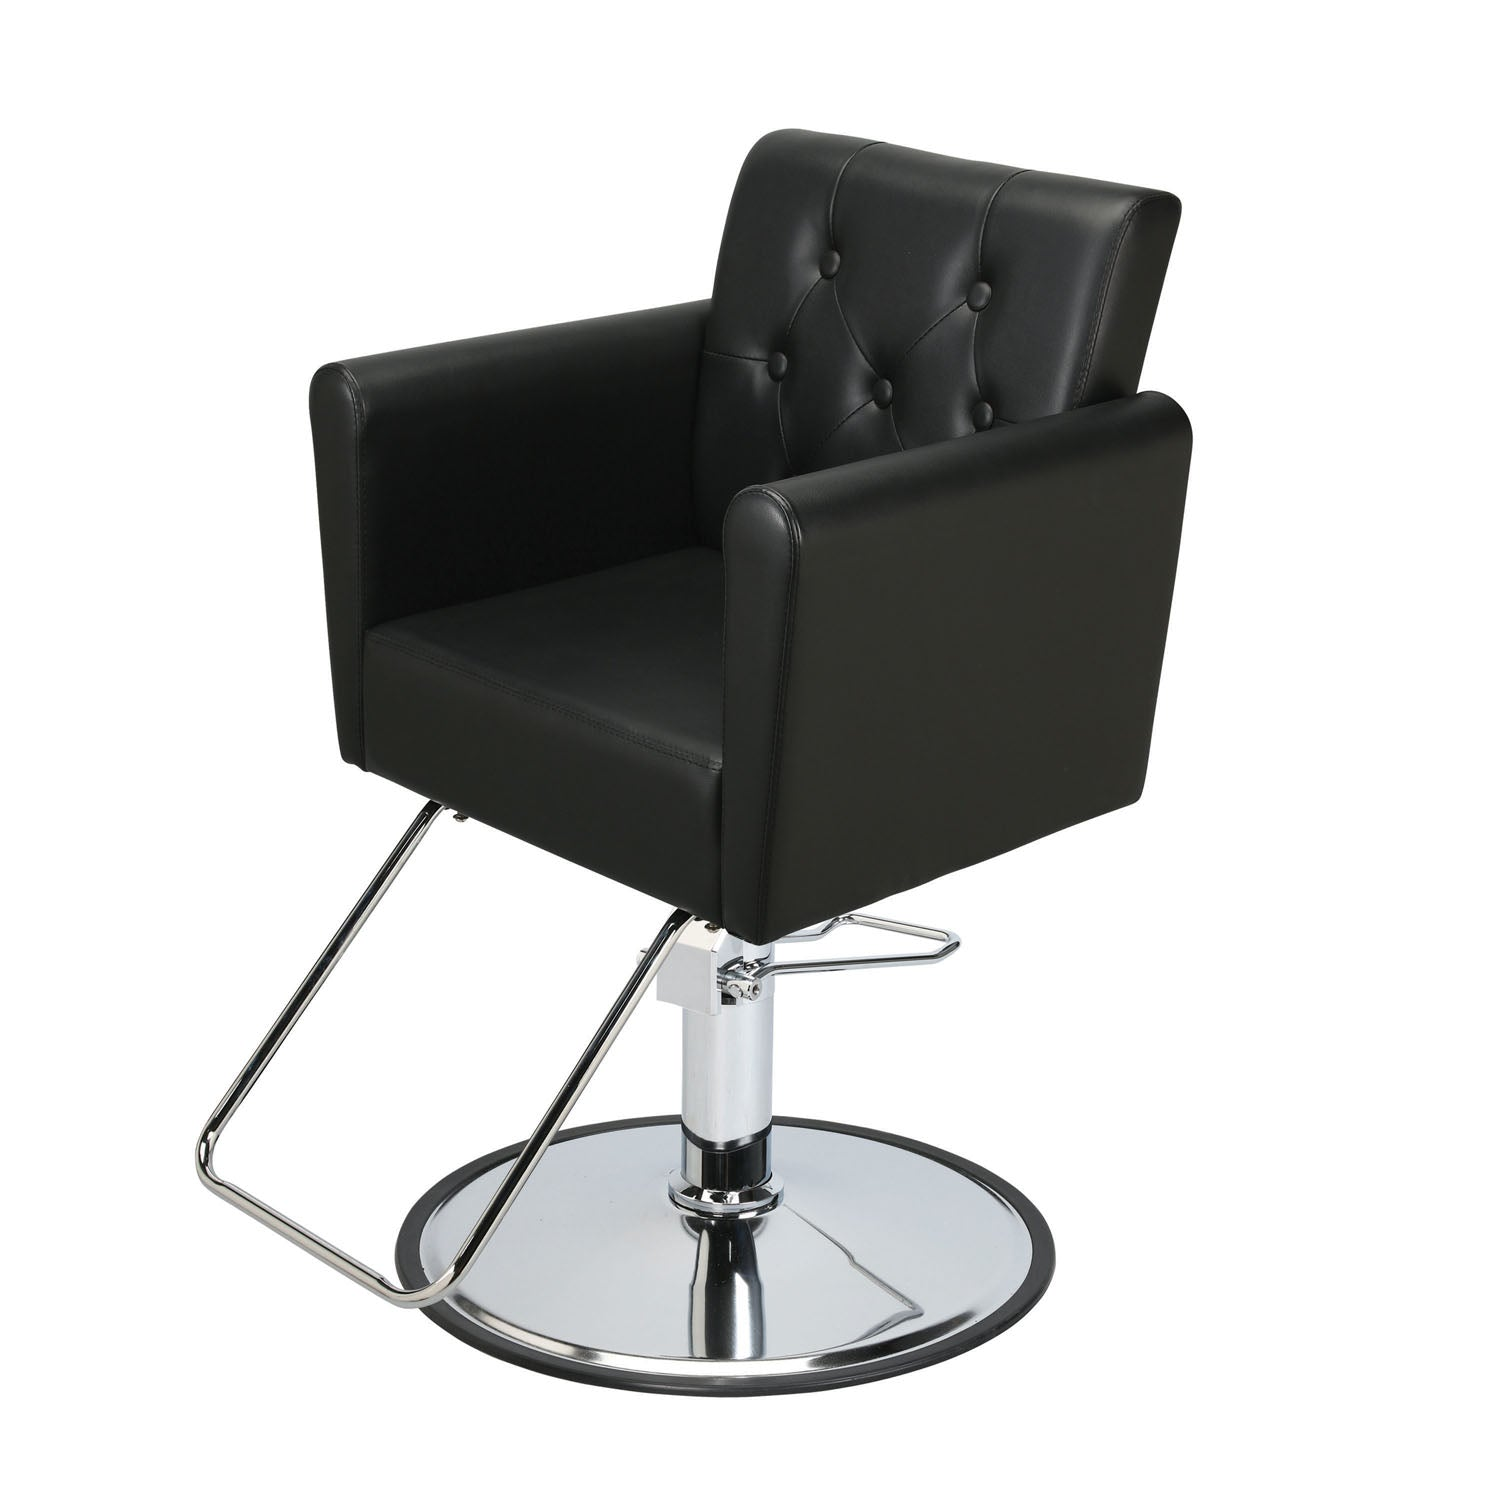 Retto Salon Styling Chair